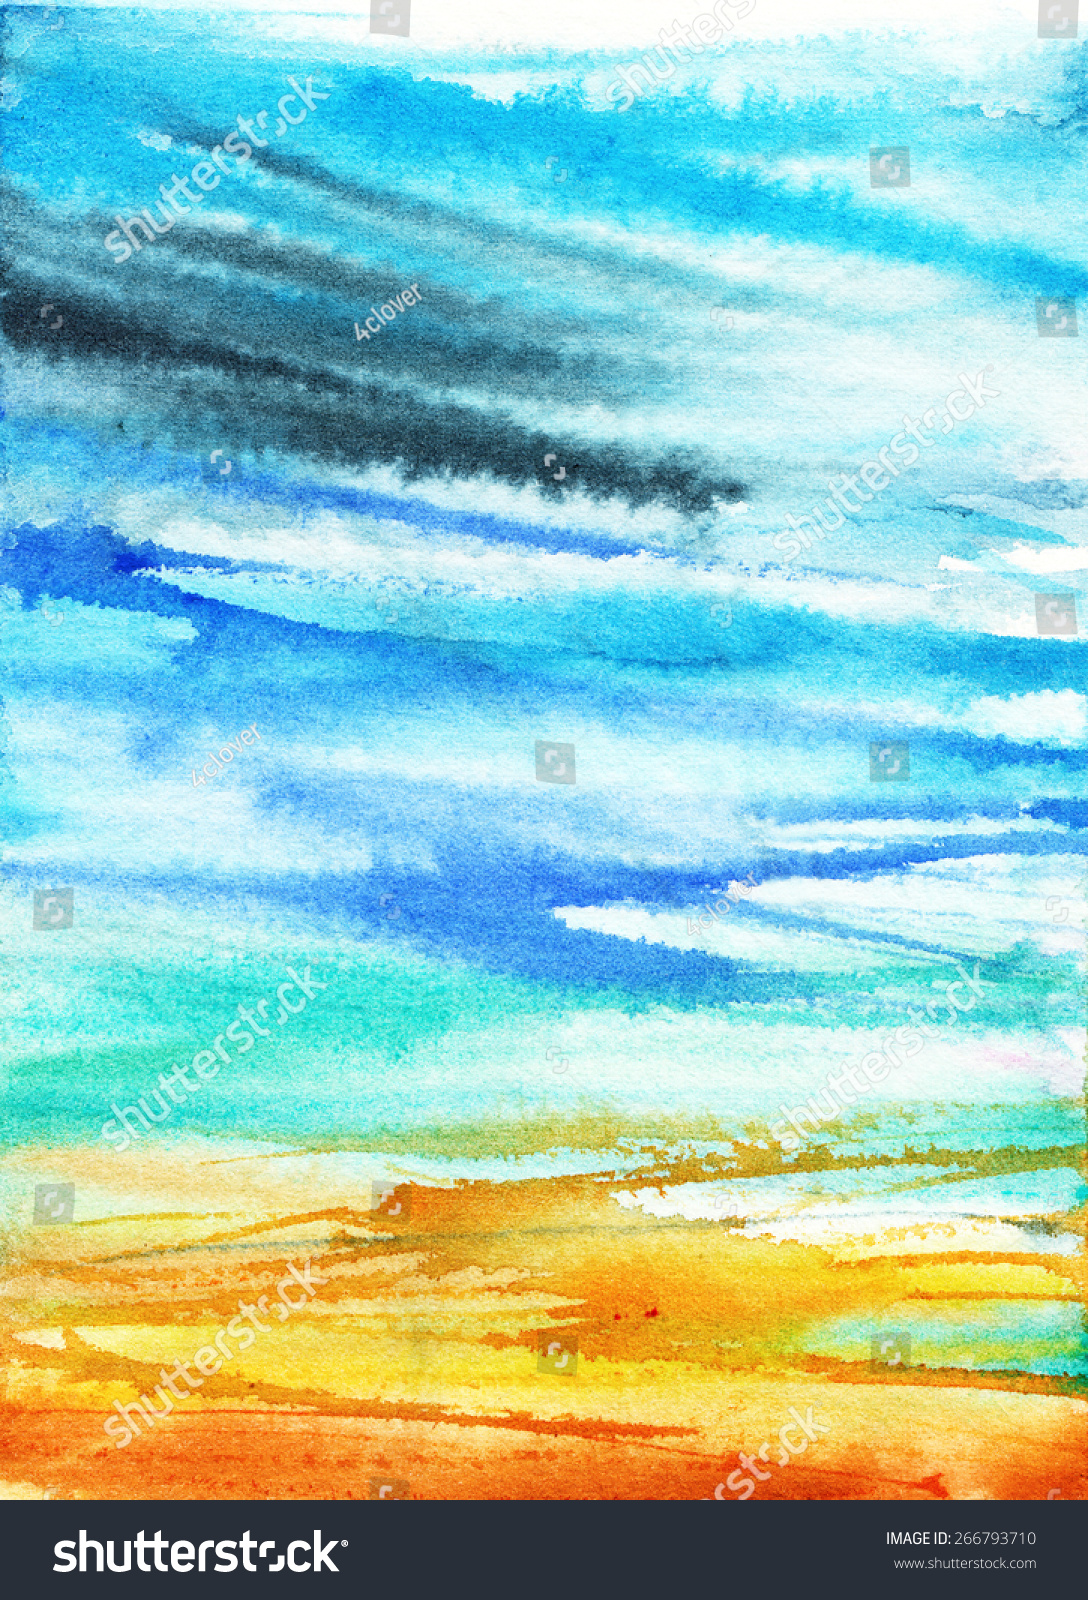 Stain, Lines, Blur, Gradient/ Summer Abstract Background